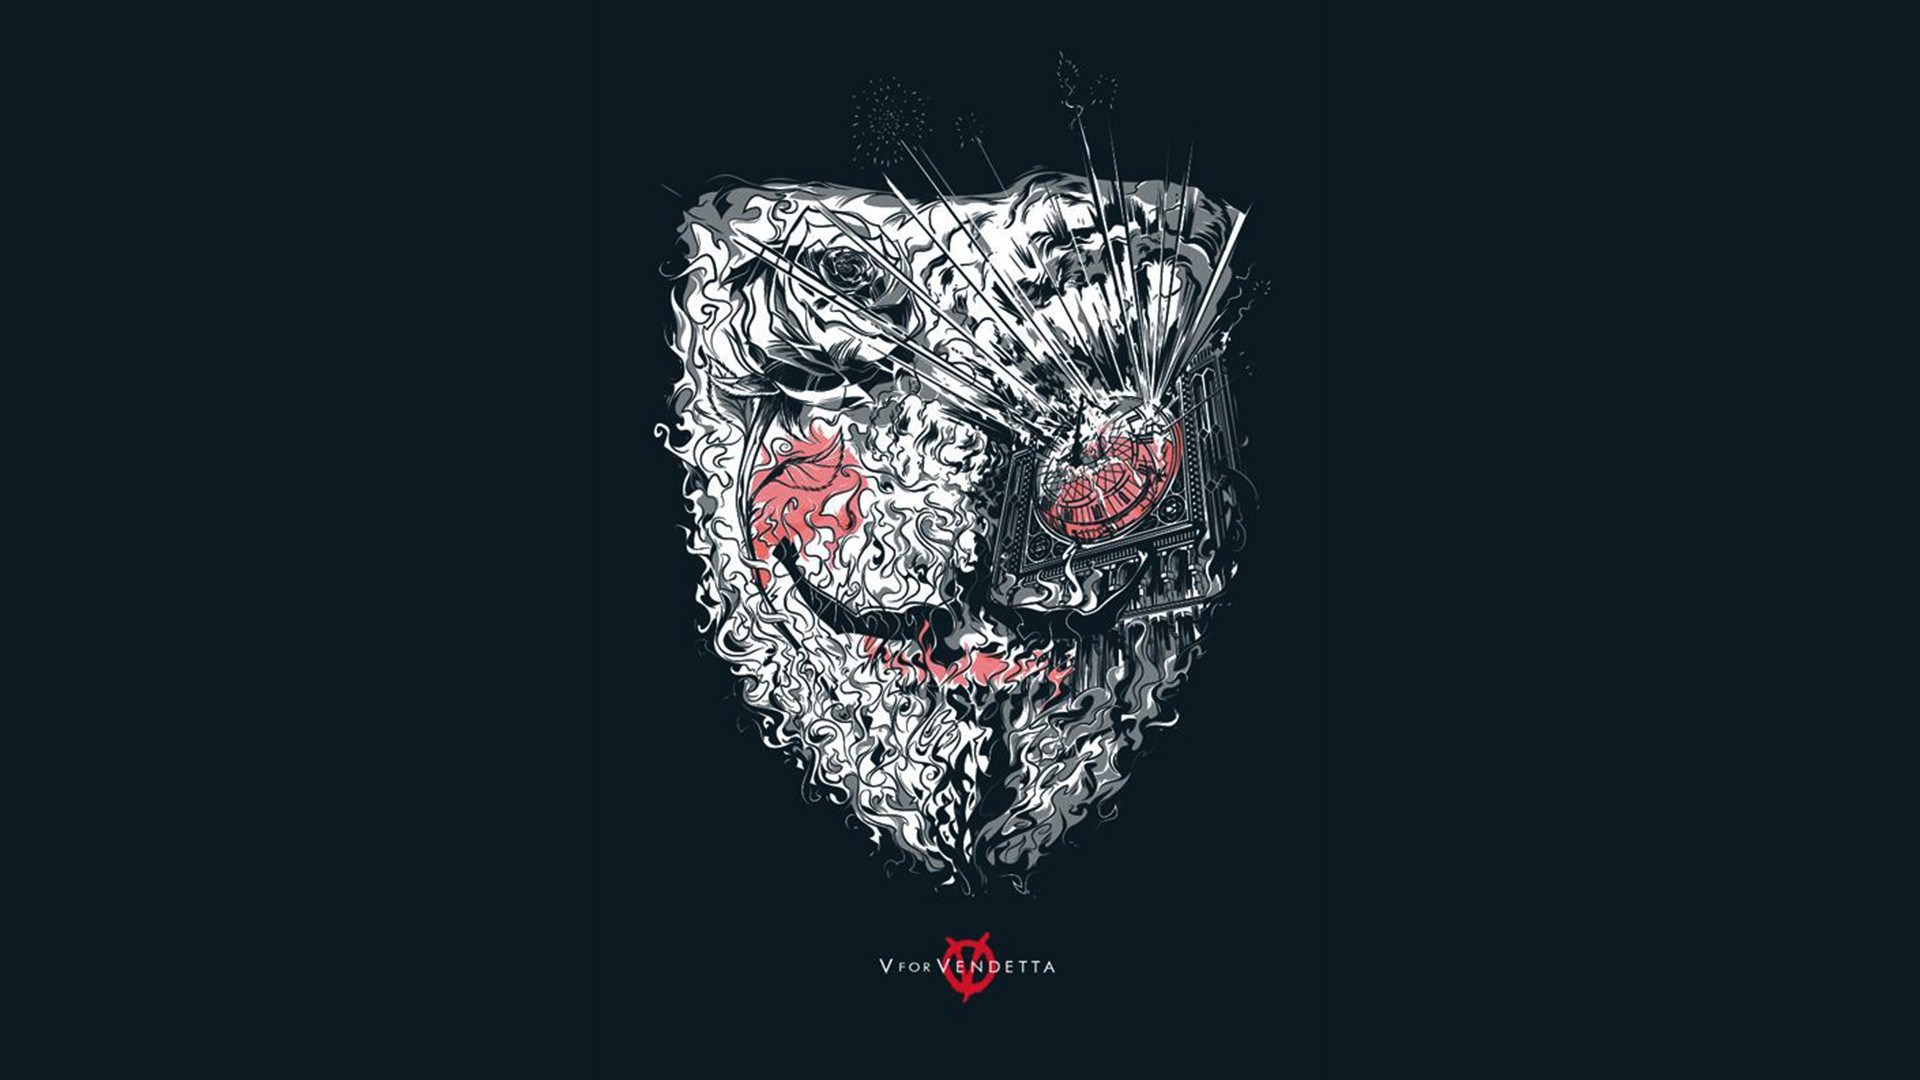 Anonymous V For Vendetta Artwork Illustration Desktop